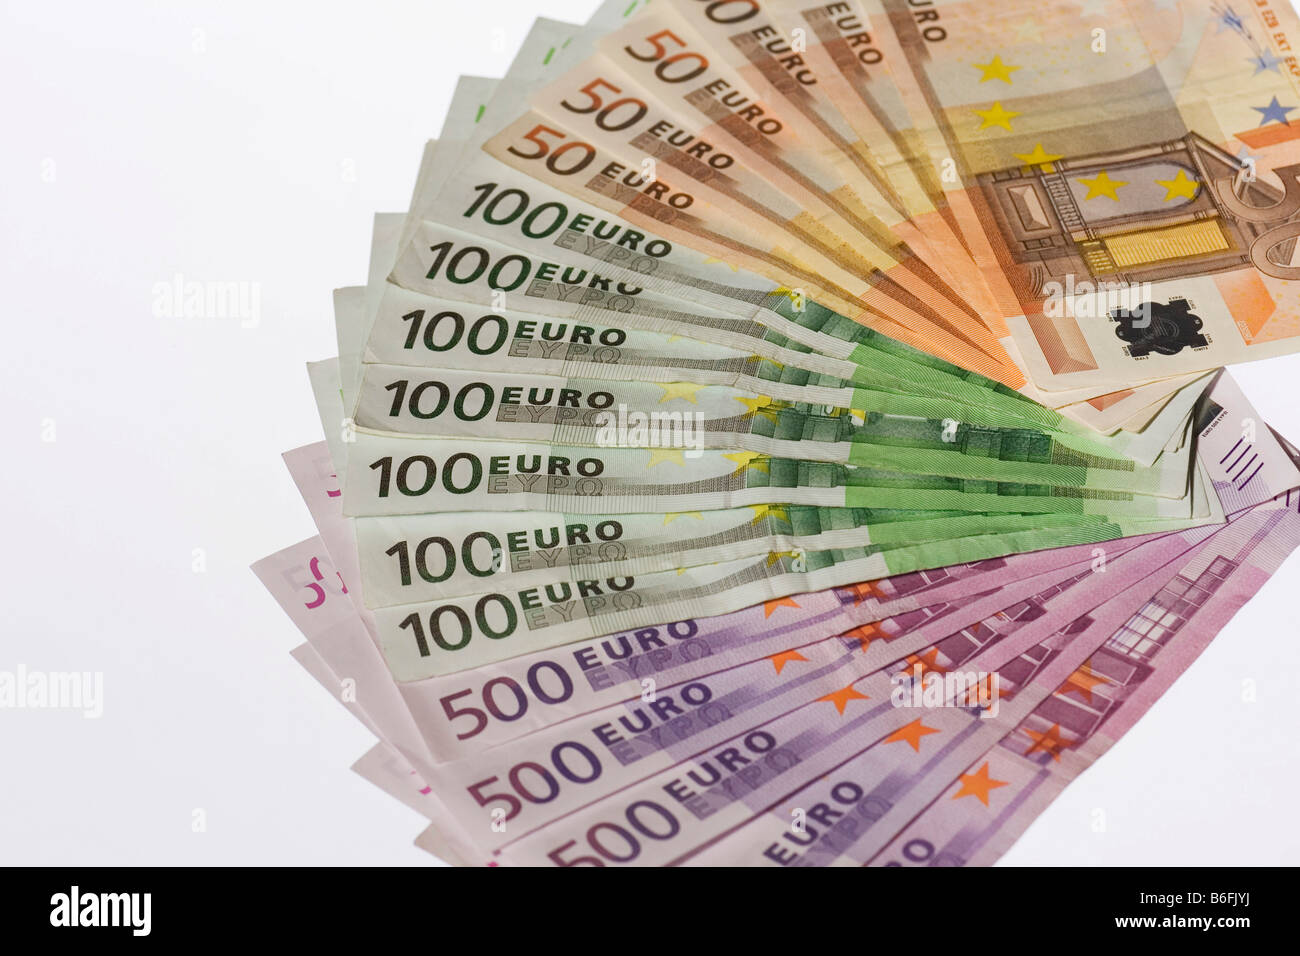 Bank notes fanned out - Stock Image